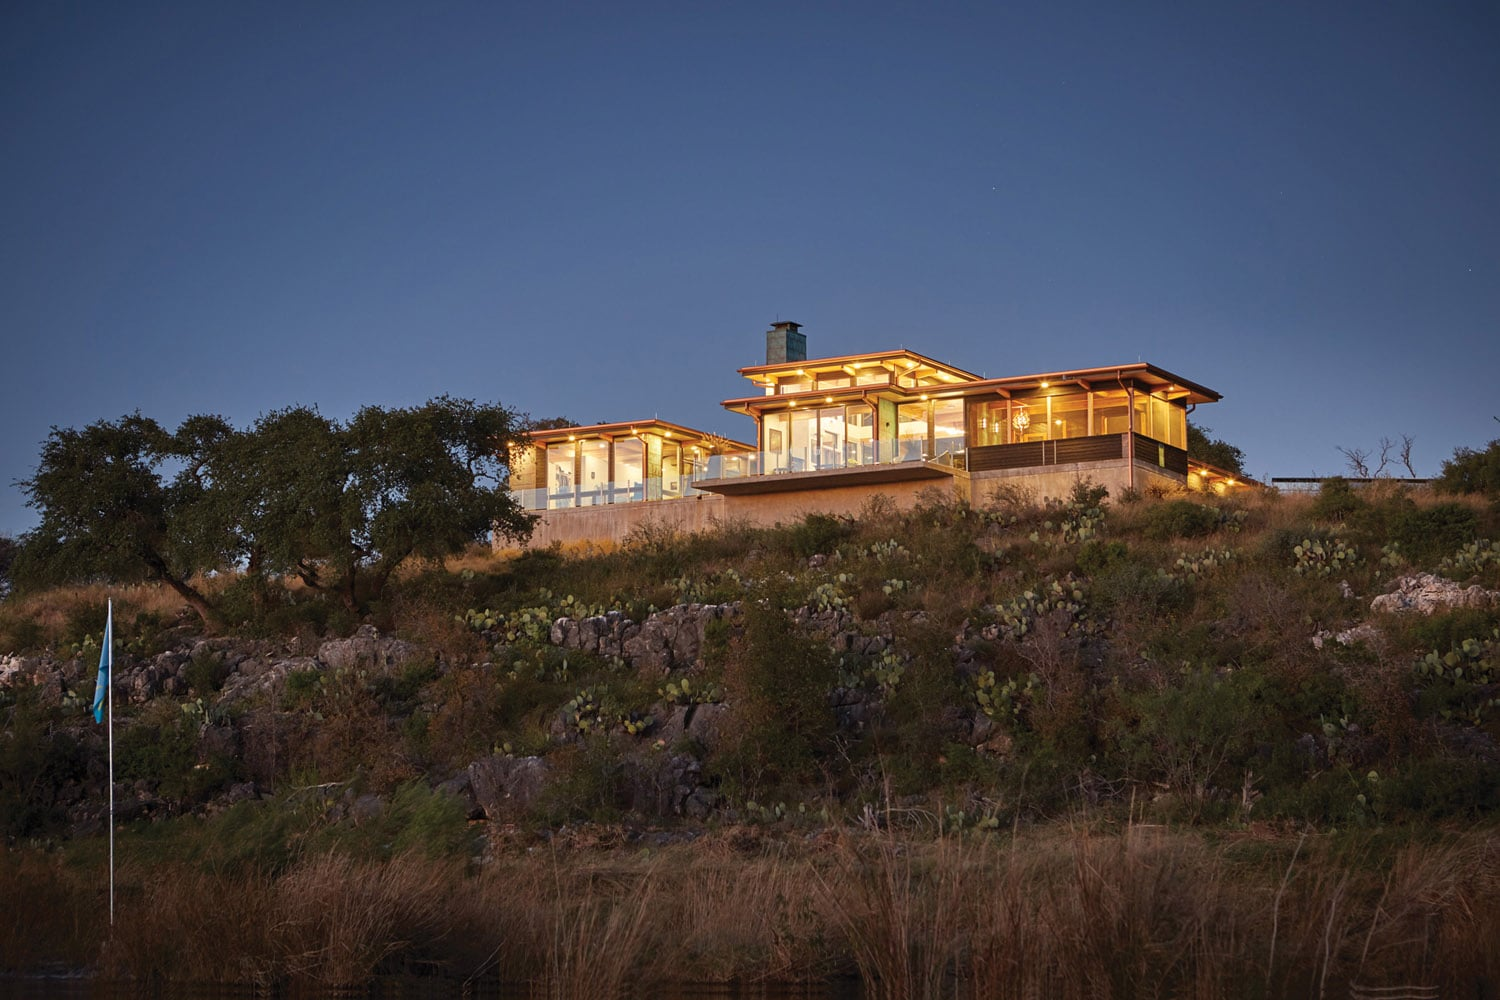 Jeff Derebery's custom Lindal Hestia home in the Texas Hill Country, Johnson City